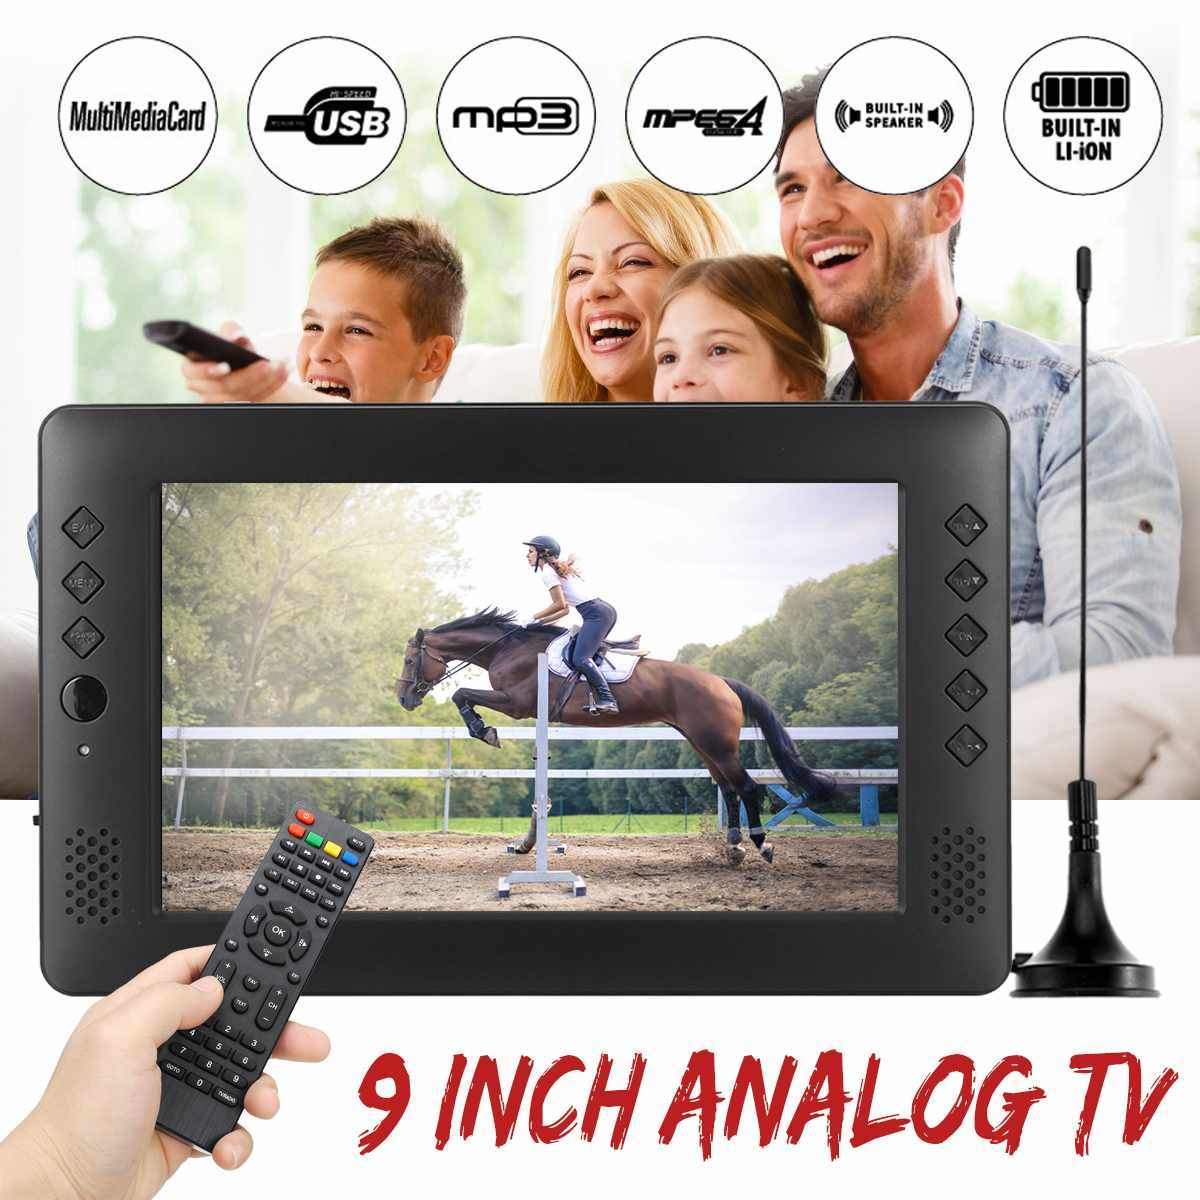 12V 9 ''TV Portable Mini Wifi Digital dan Analog TV HD DVB-T2 DVB-T DTV ATV Mobil Smart Televisi mendukung USB TF Kartu MP4 MP3